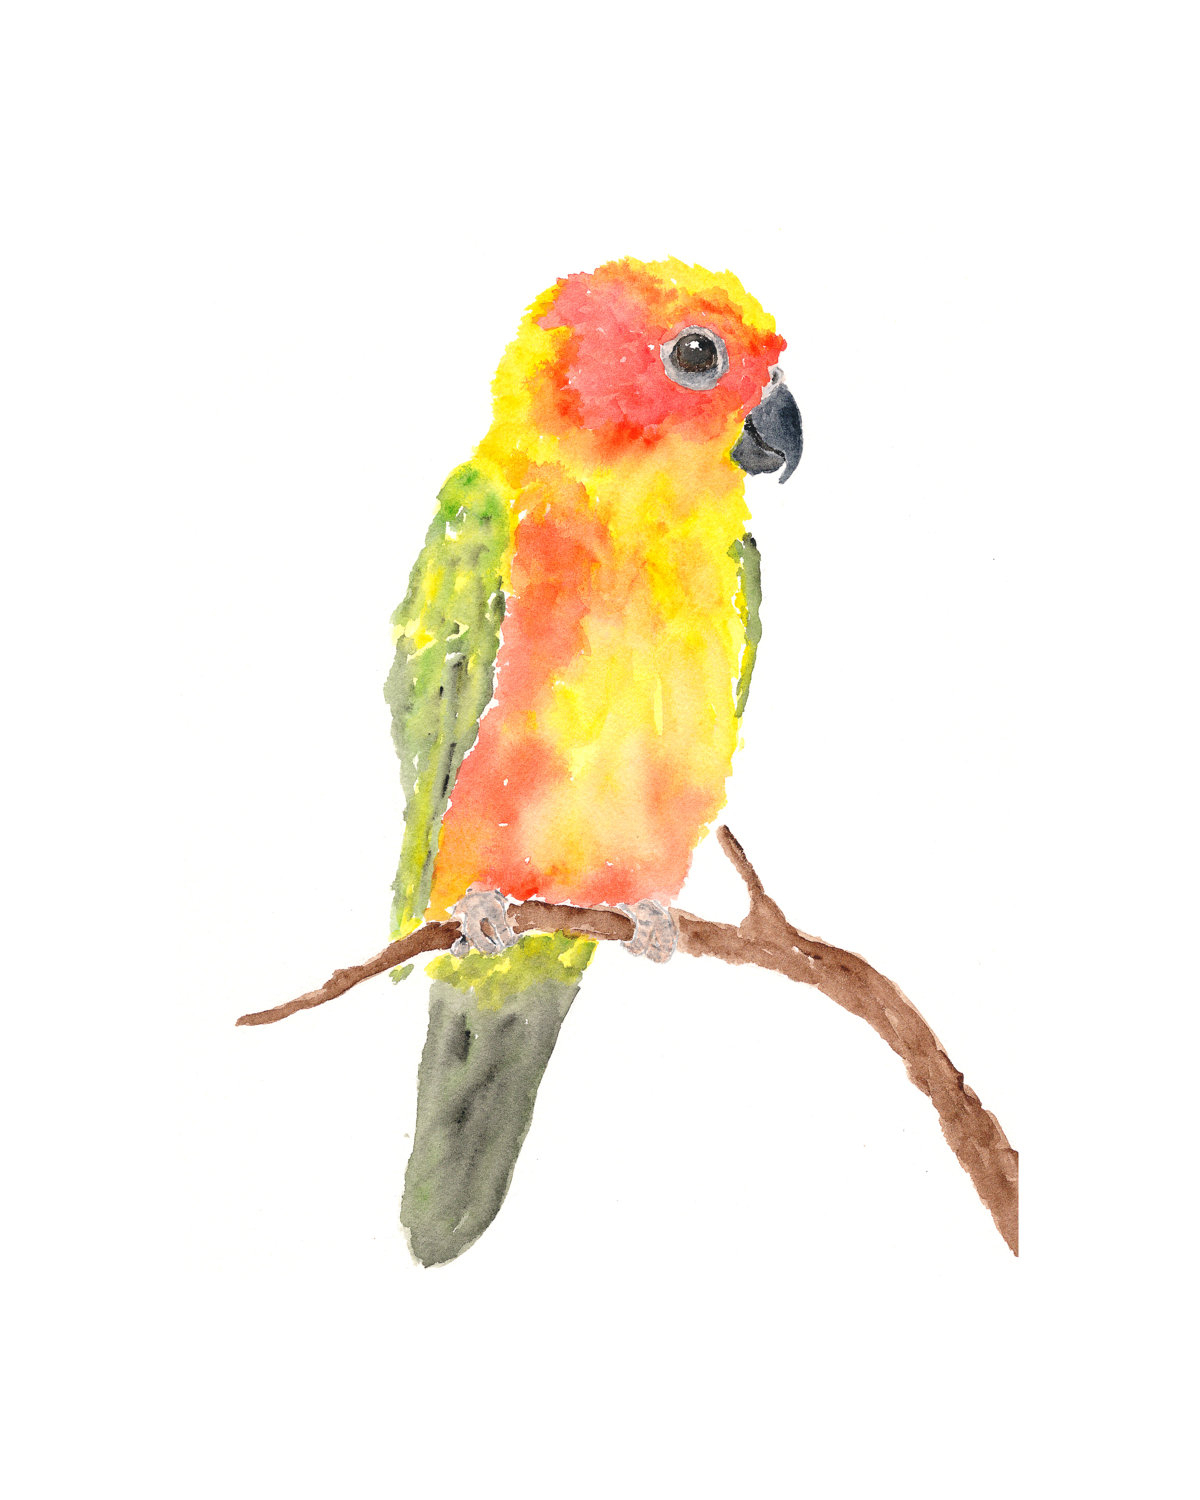 1200x1500 Watercolor Paintings Of Parrots Watercolor Paintings Of Parrots